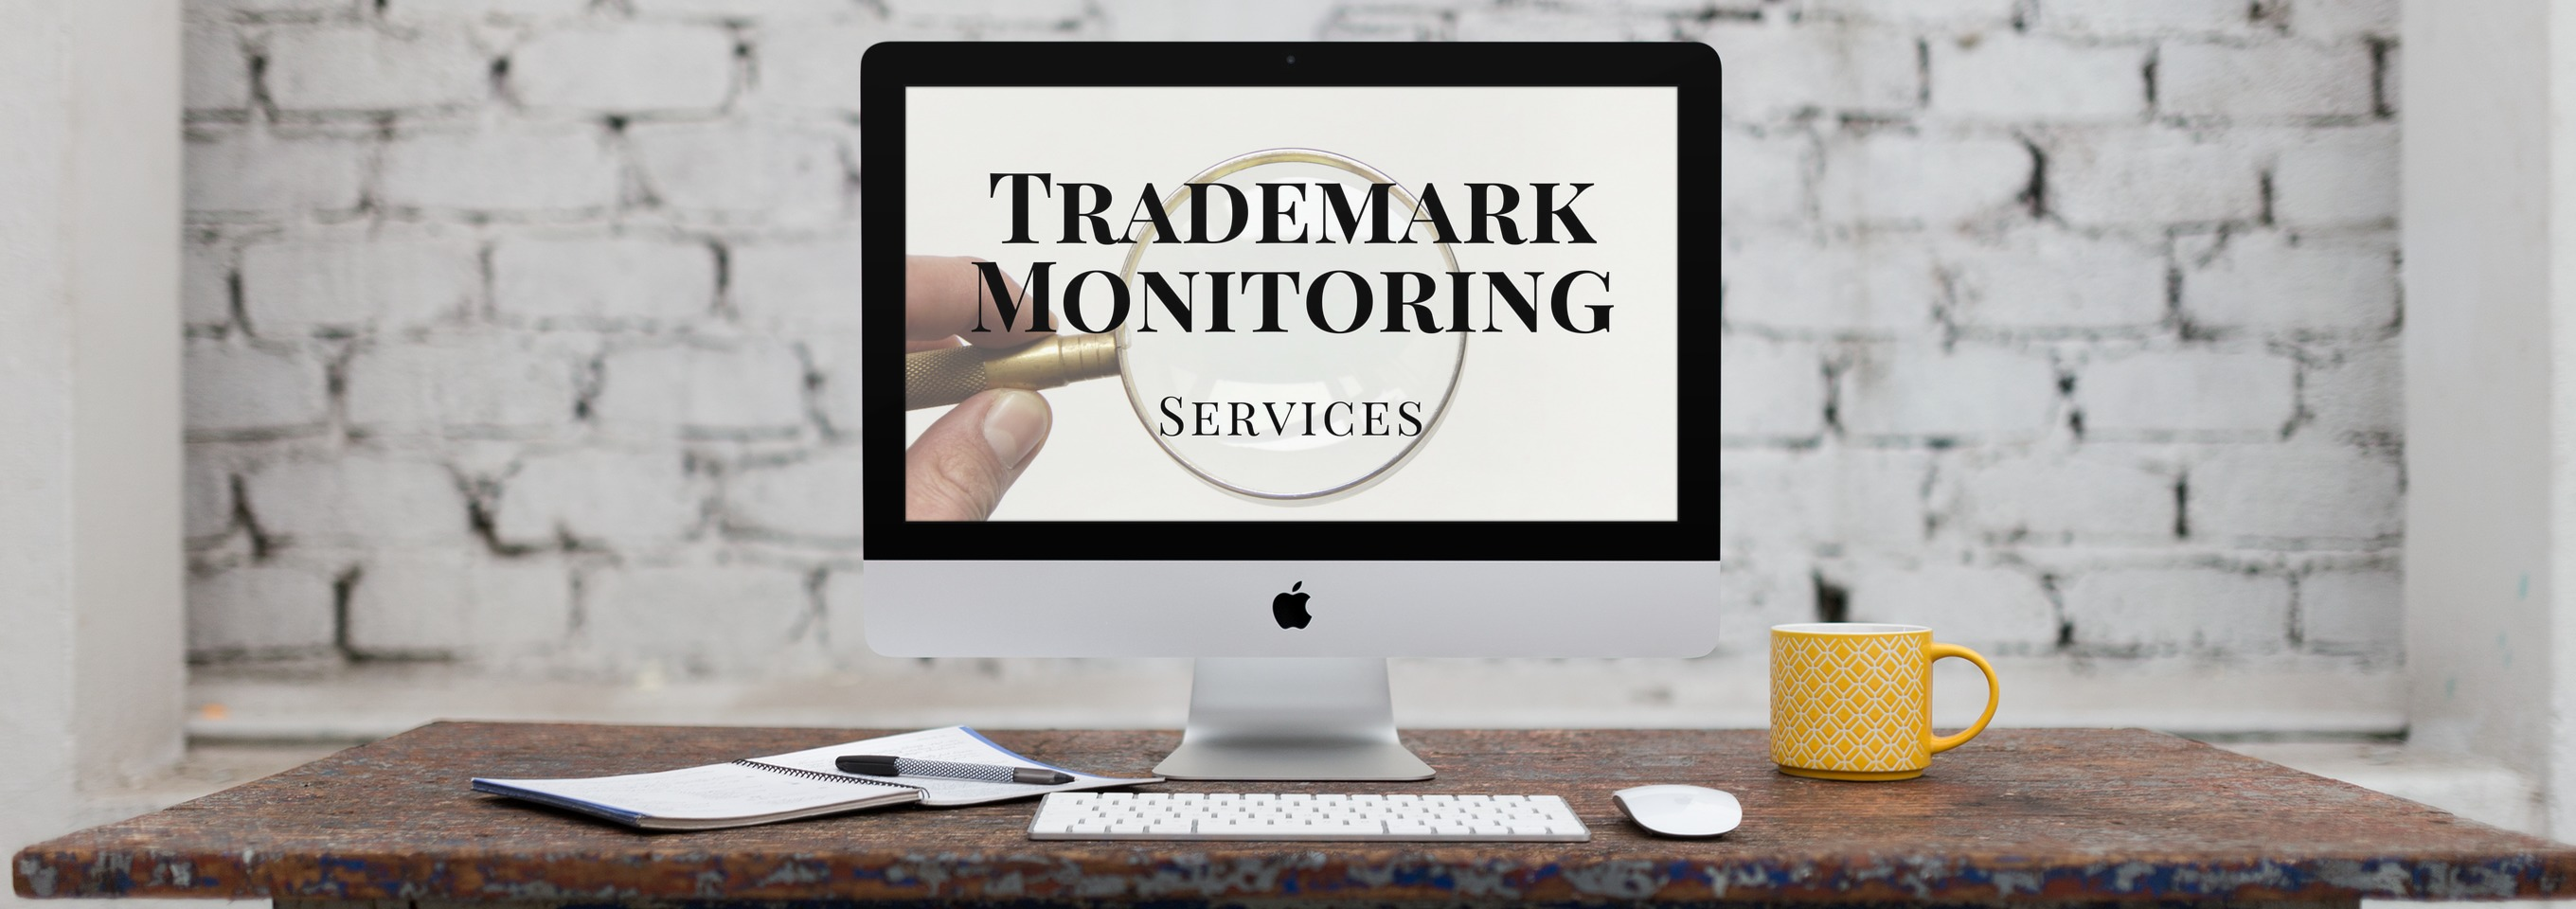 Trademark Monitoring Services-Hughley Smith Law